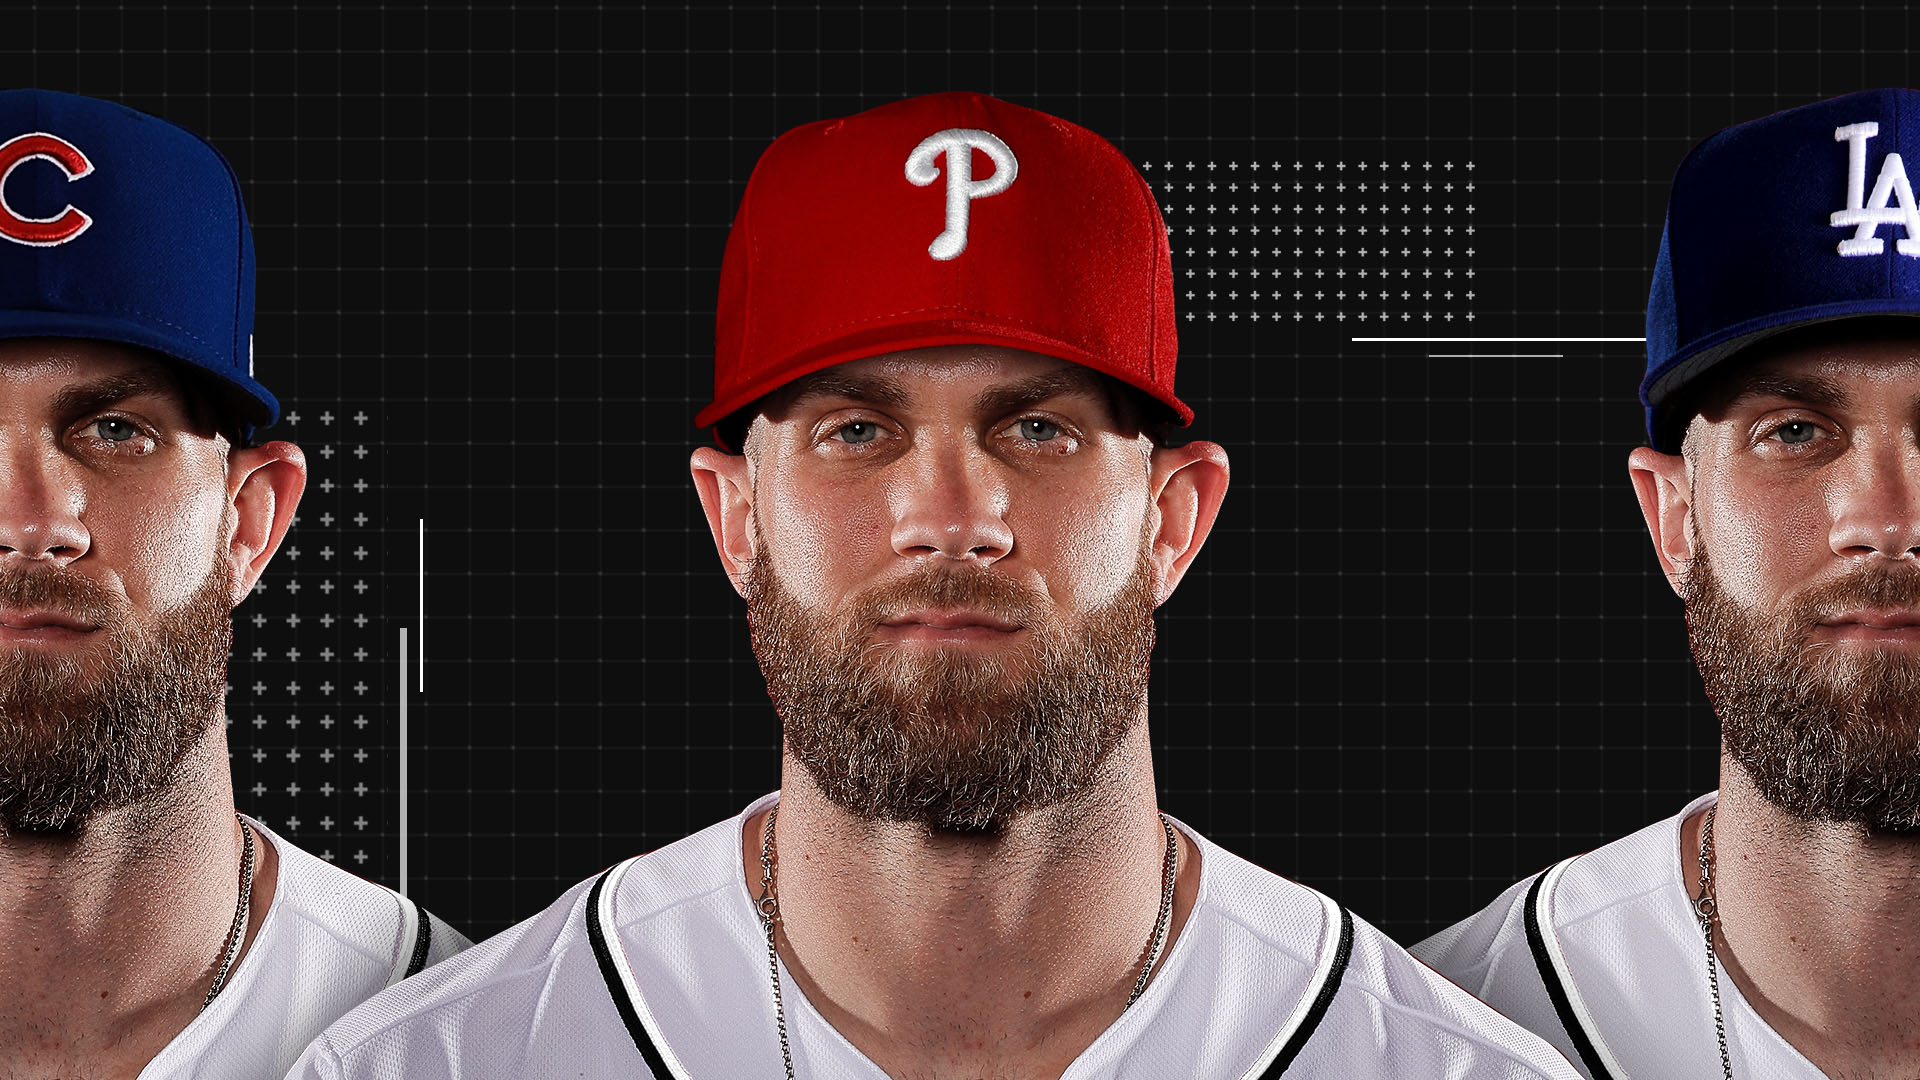 Bryce-harper-sn-graphics-getty-images-111318_nbpb50dgsyyr1qoiose0n2d2z